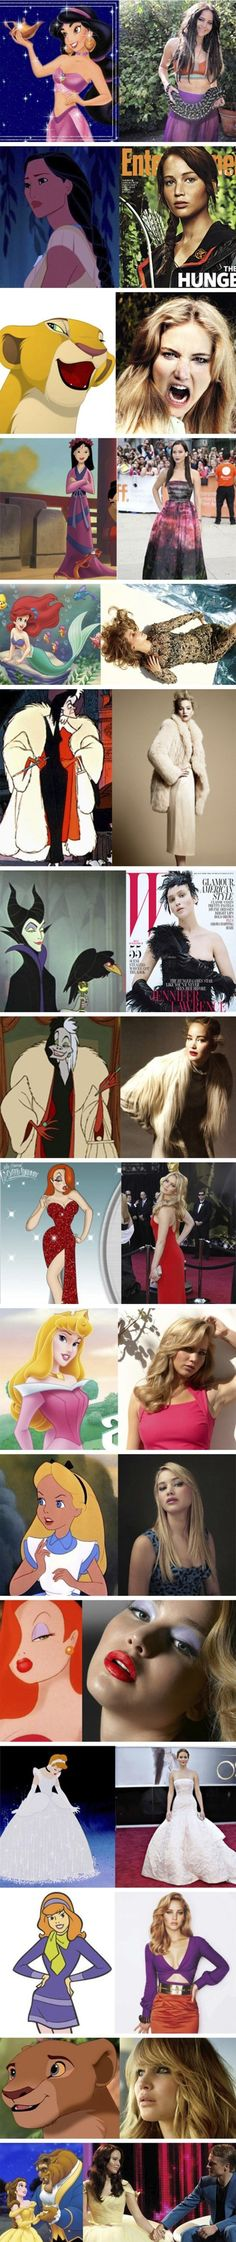 Jennifer Lawrence (the Hunger Games - Katniss Everdeen) and Disney princesses/cartoon characters